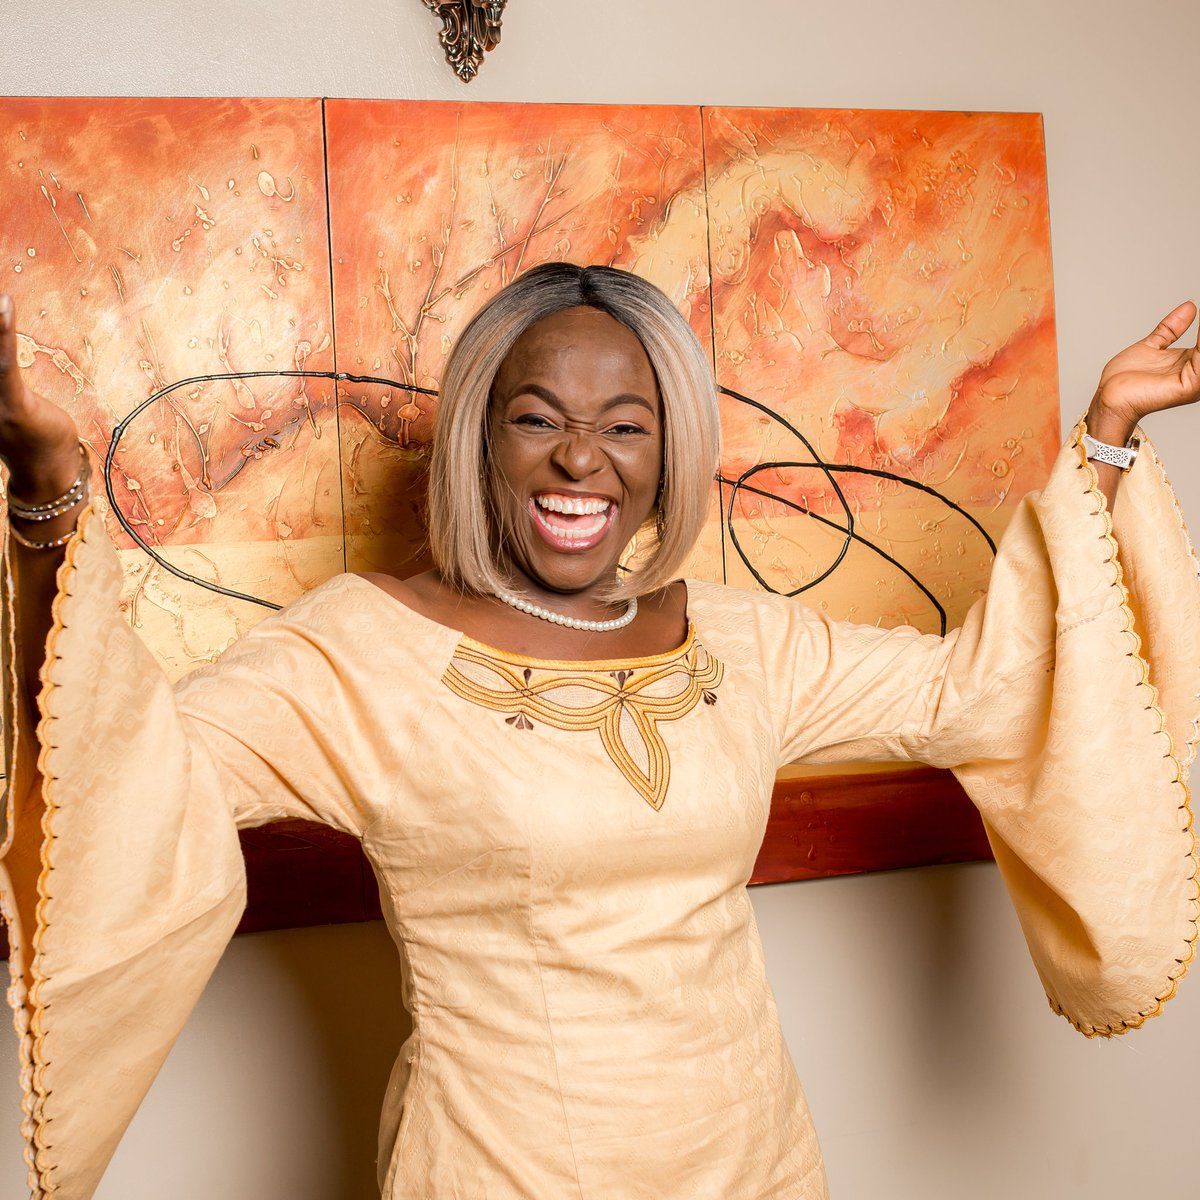 This is me rejoicing cos I won today&#39;s elections. The election scheduled for 23rd February 2019 concerns me only to the extent that #BuhariMustGo! And the person who can send him back to his village is @atiku. I&#39;m so committed to sending @MBuhari away that I pick #Atiku to help!<br>http://pic.twitter.com/1BLTohILF1